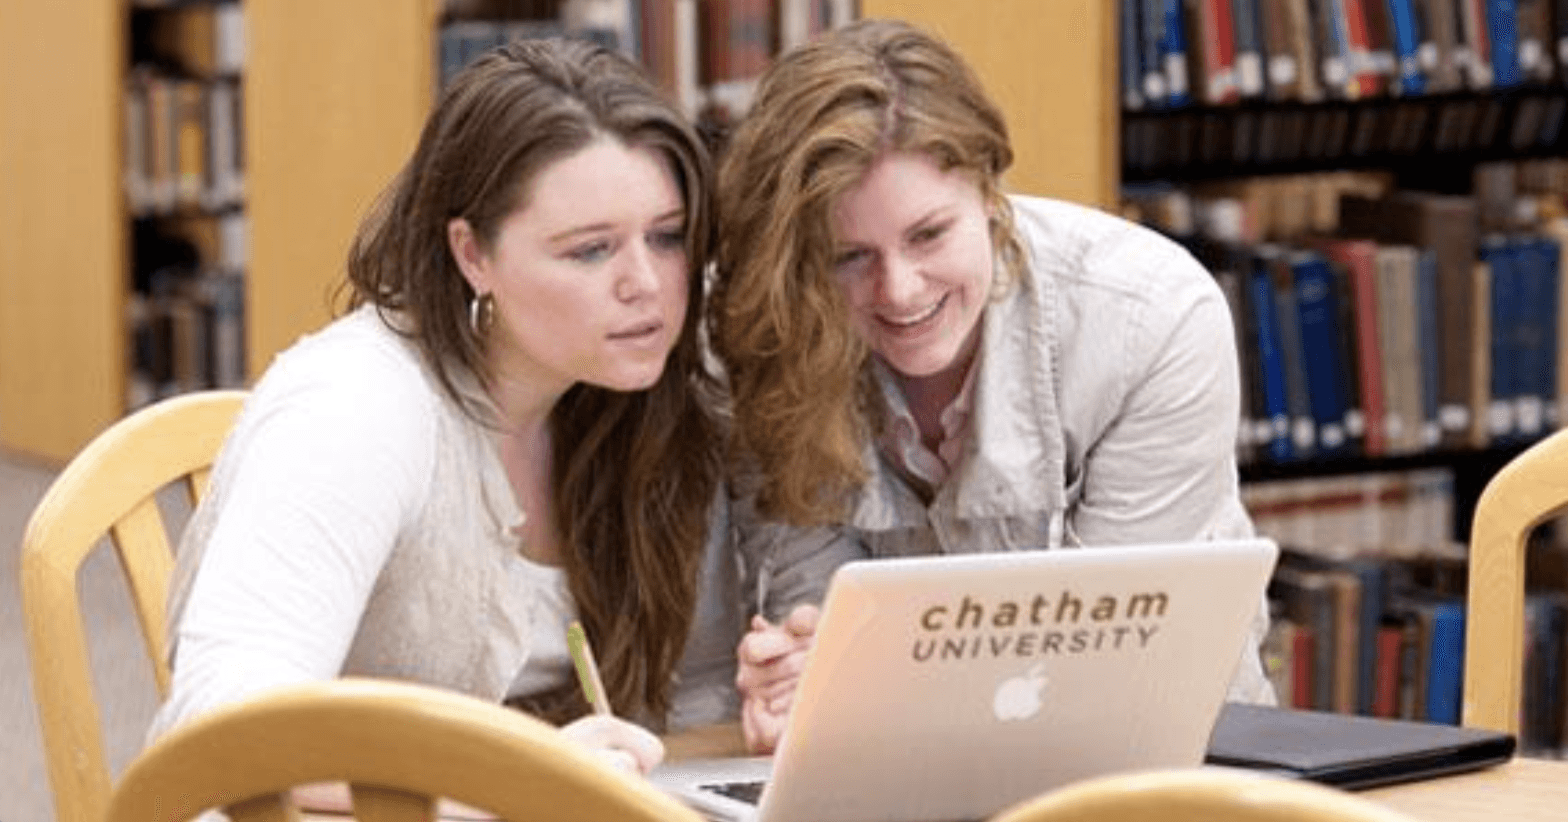 ITS Resources and Services for Chatham Students